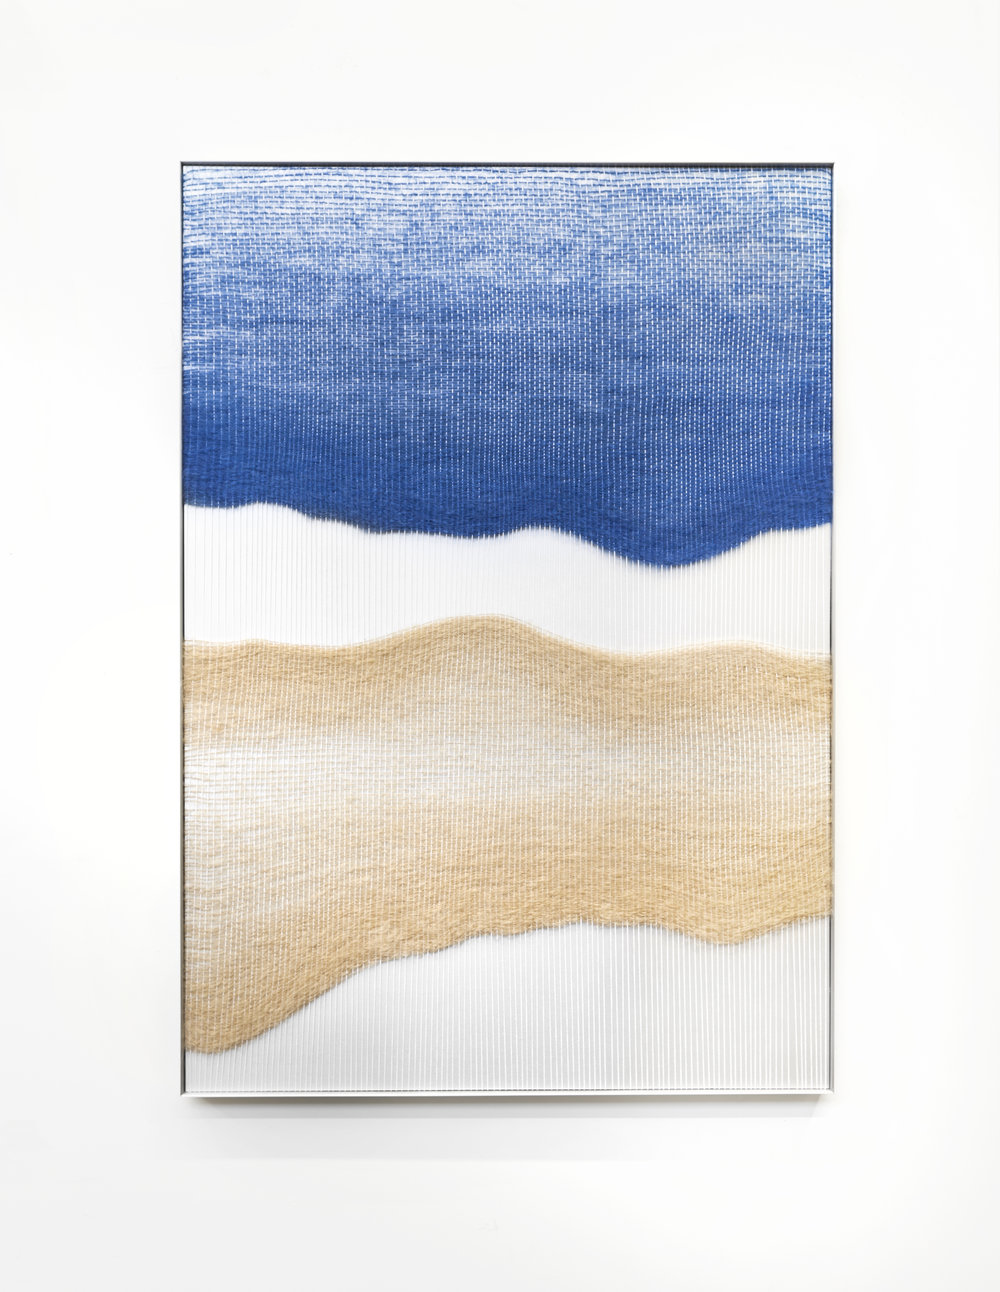 MIMI JUNG - Blue and Tan Live Edge Forms, 2018